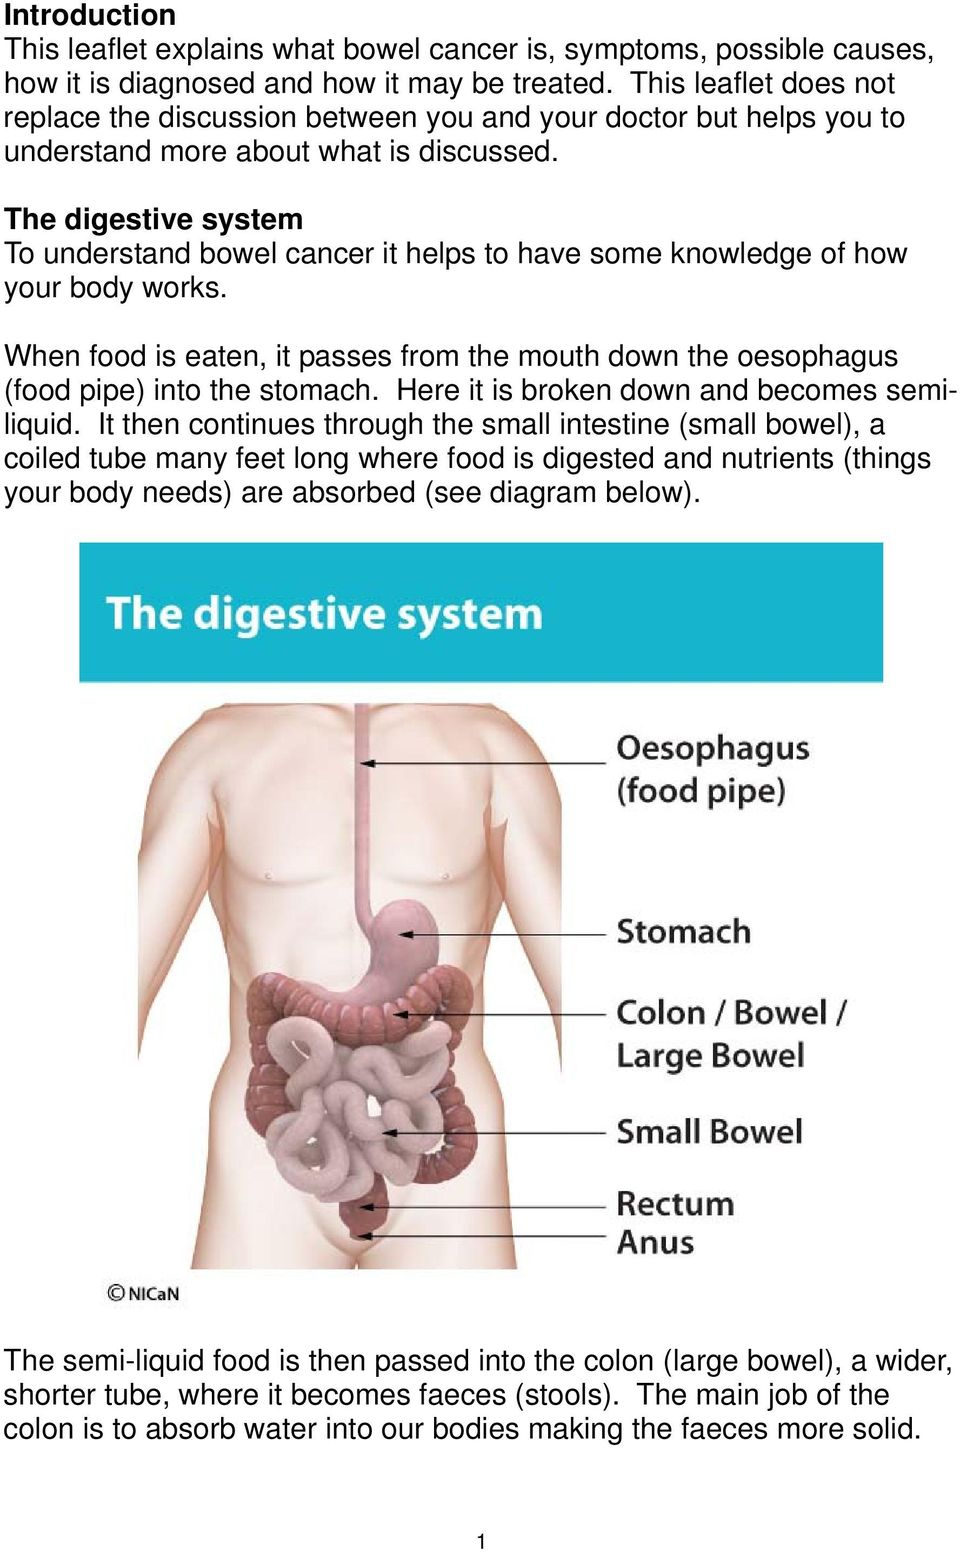 The digestive system To understand bowel cancer it helps to have some knowledge of how your body works. When food is eaten, it passes from the mouth down the oesophagus (food pipe) into the stomach.